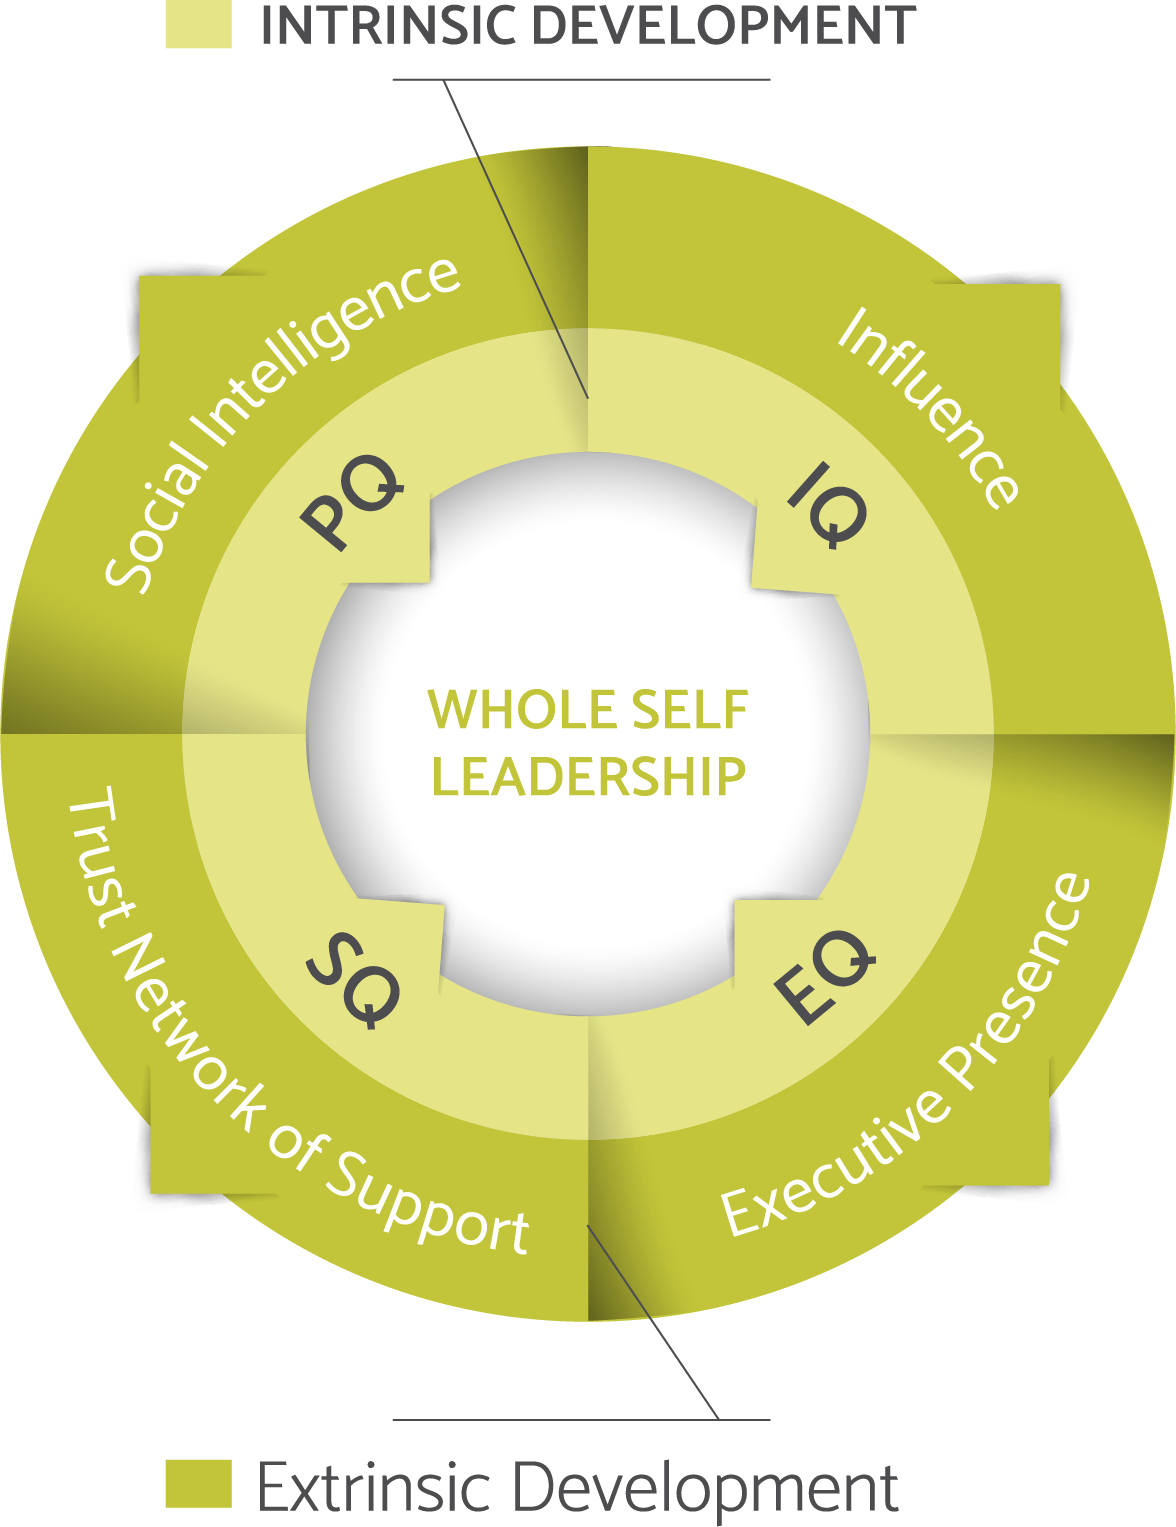 integral-growth-model-accelerate-whole-self-leadership